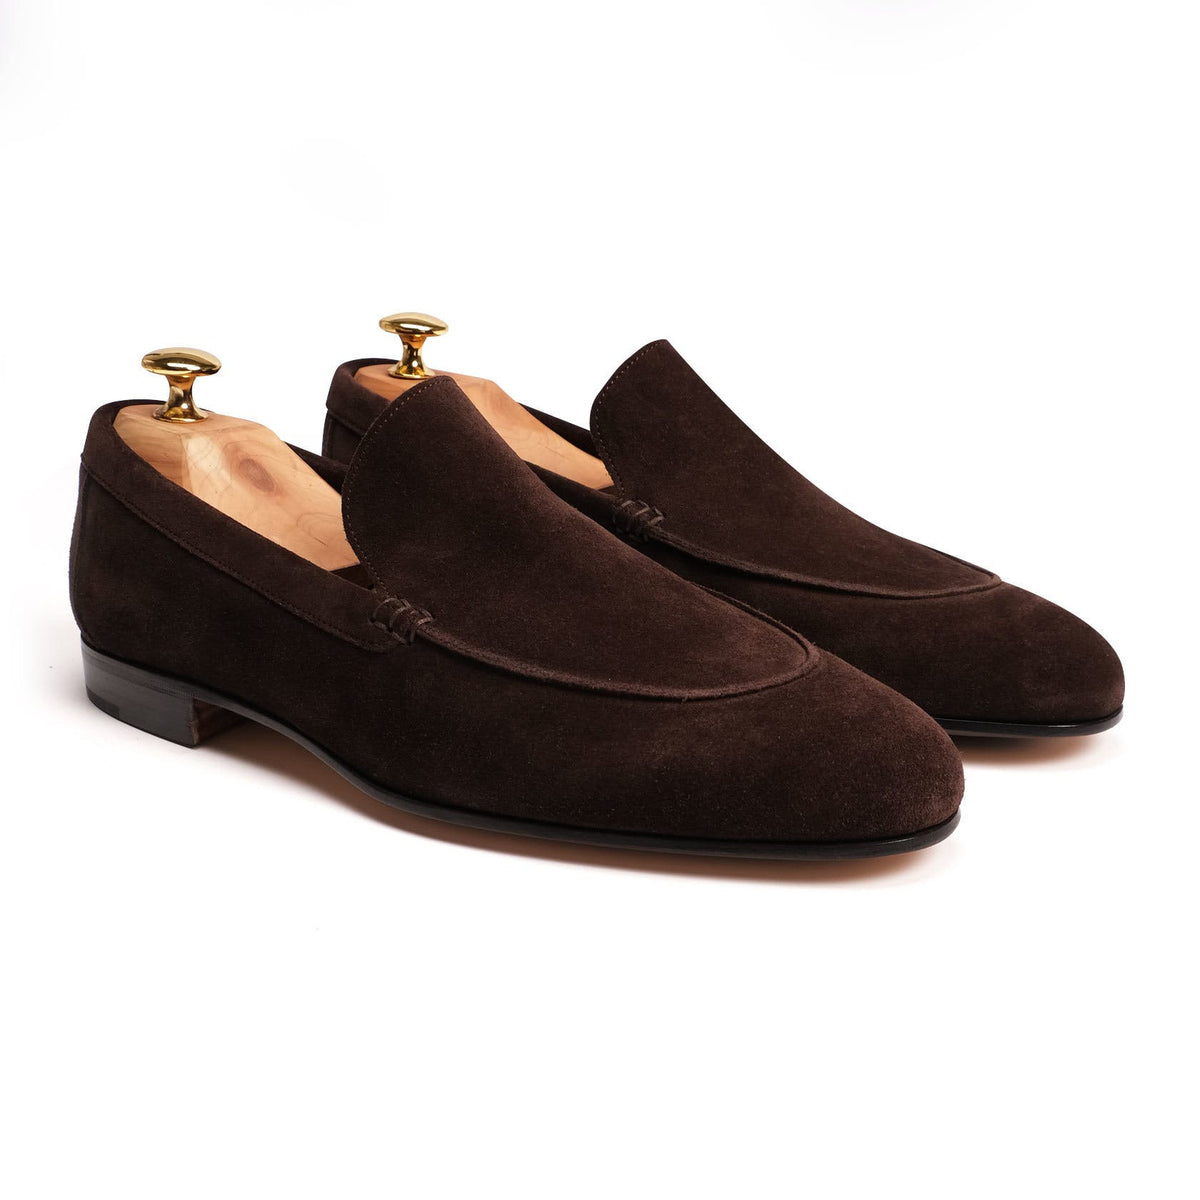 Rivolta Aria Venezia 201 - Chocolate Brown Suede Loafers